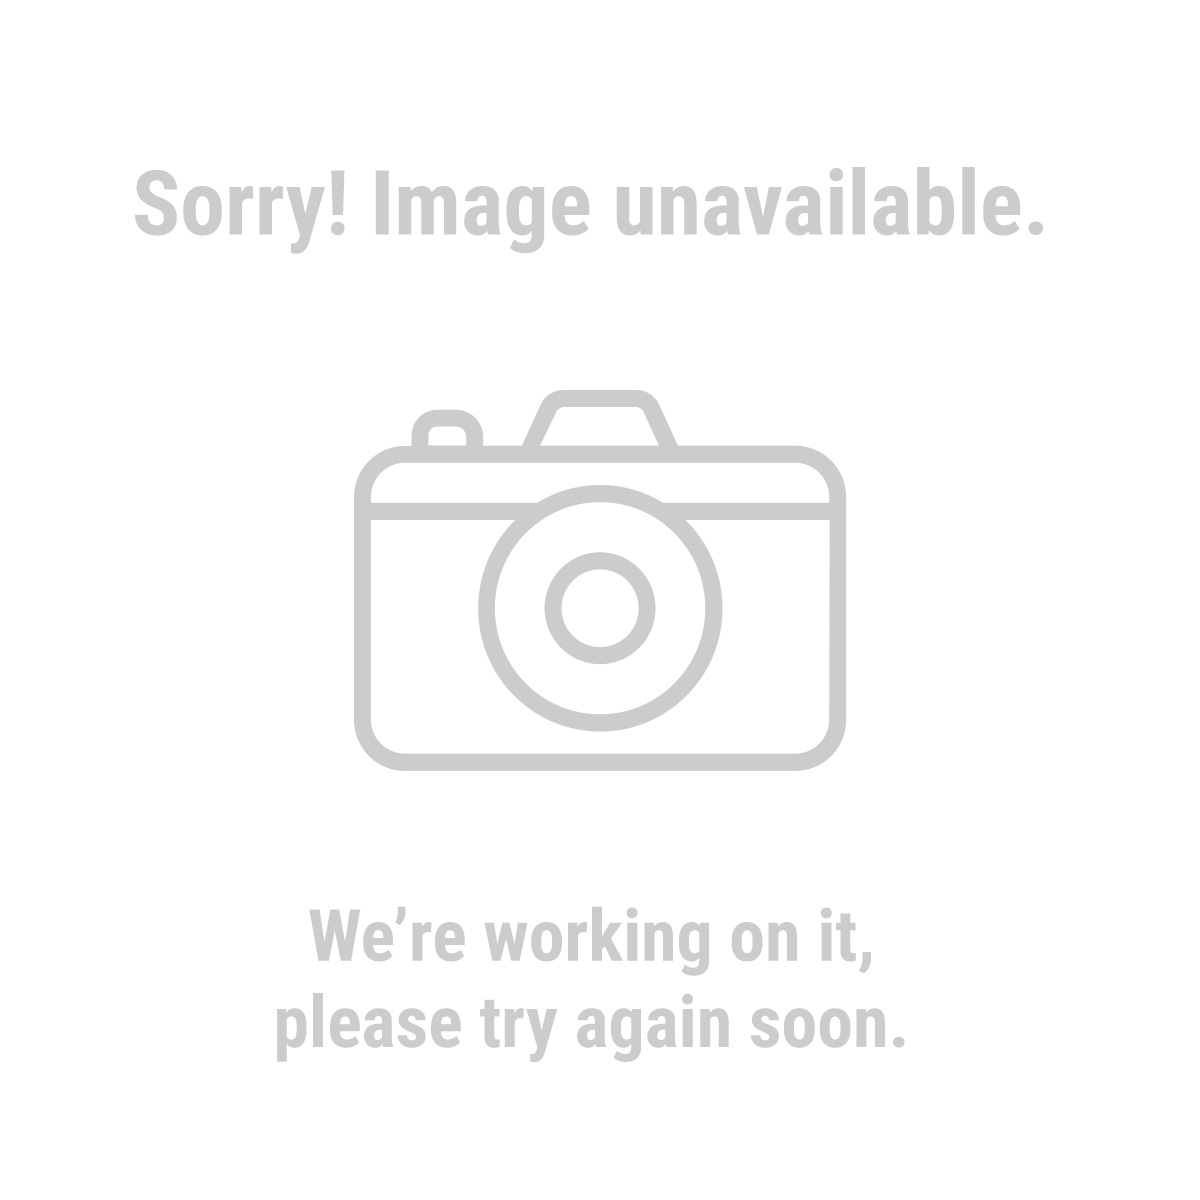 Chicago Electric Welding Systems 67102 Plastic Welding Kit 80 Watt Iron